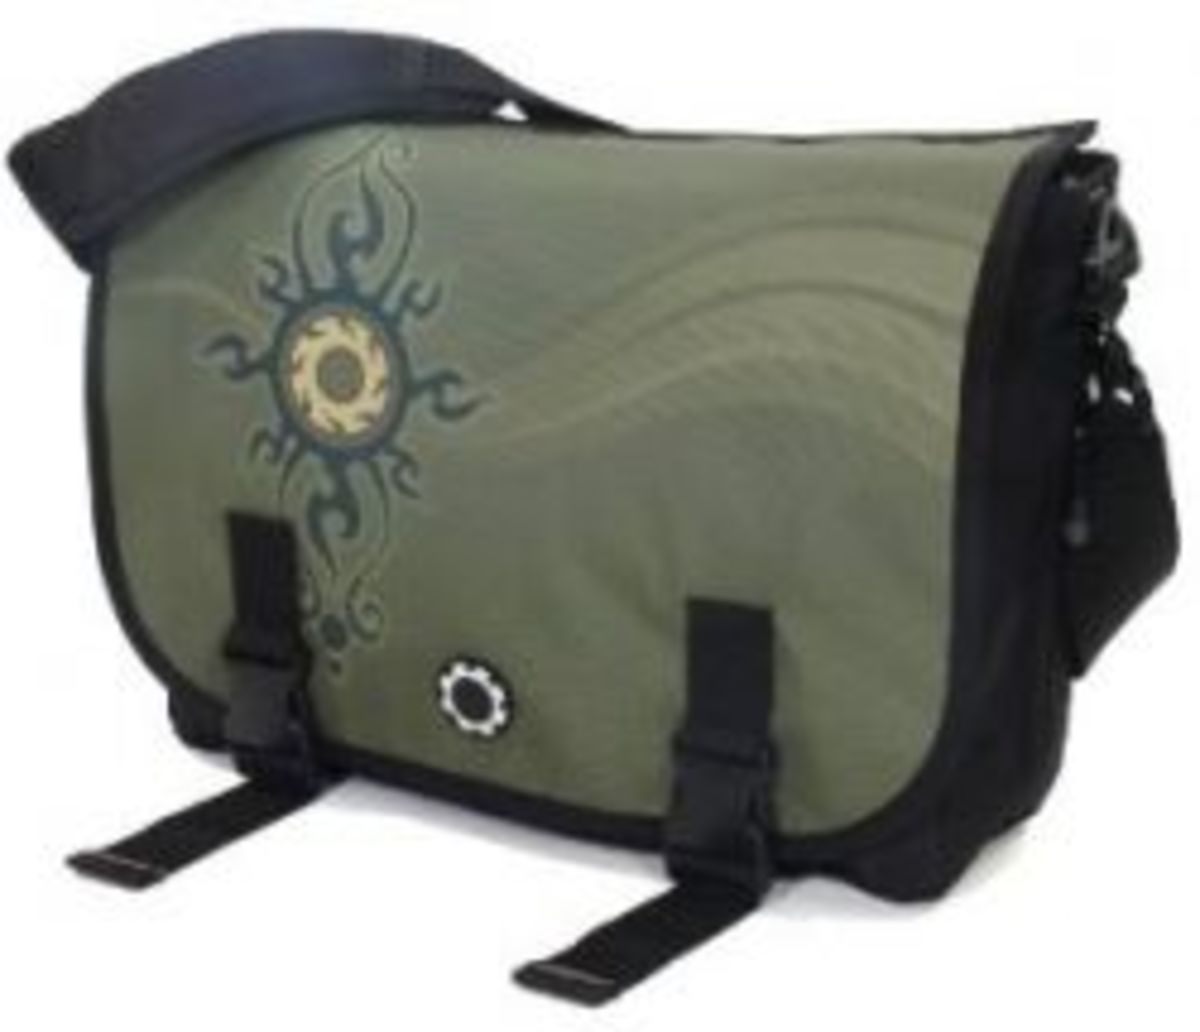 DadGear Diaper Bag - Over 20 styles to choose from